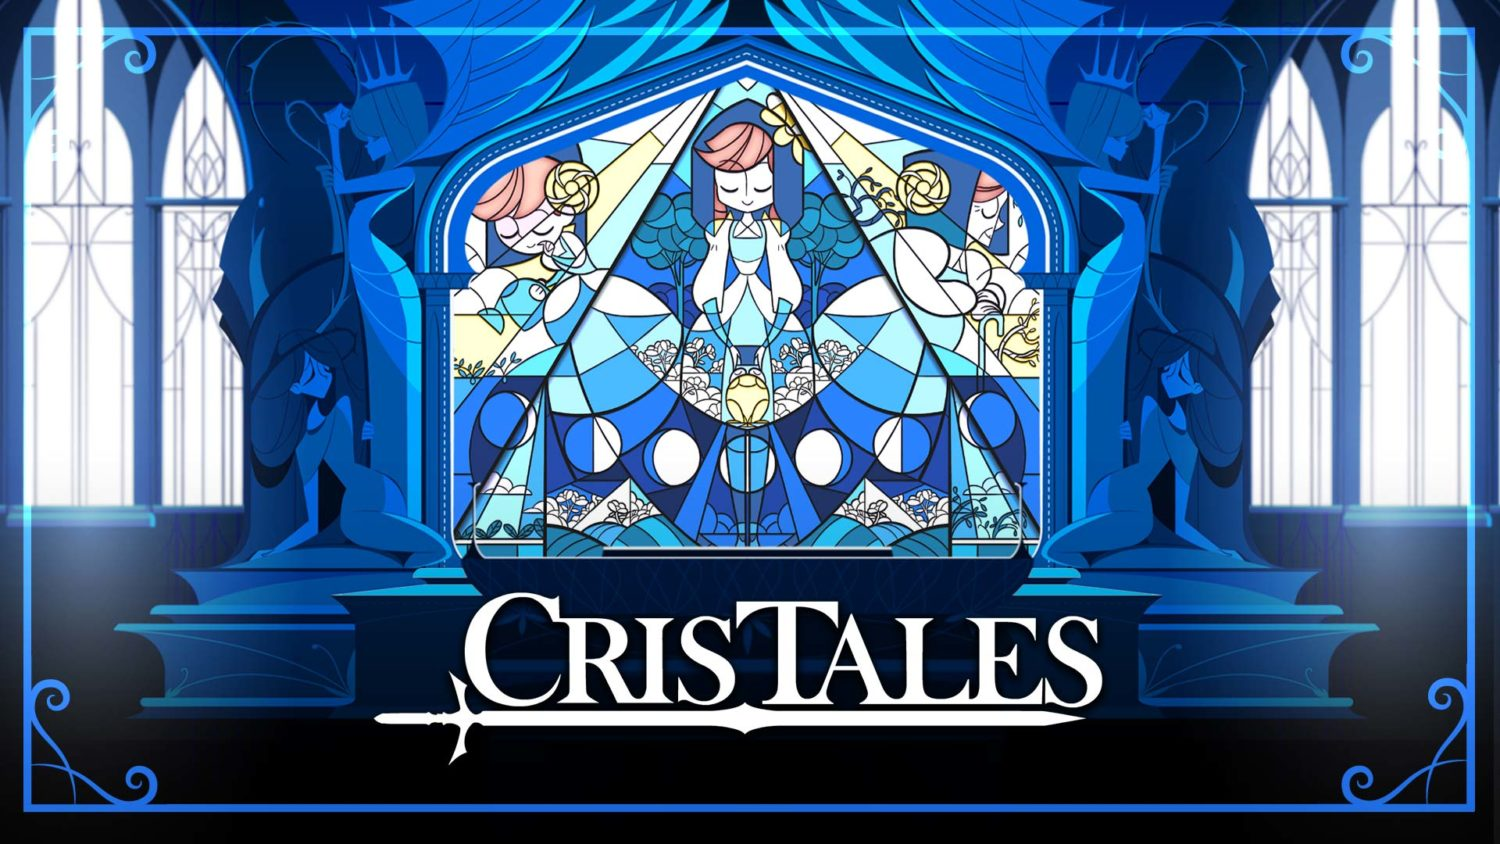 Cris Tales announced for Nintendo Switch